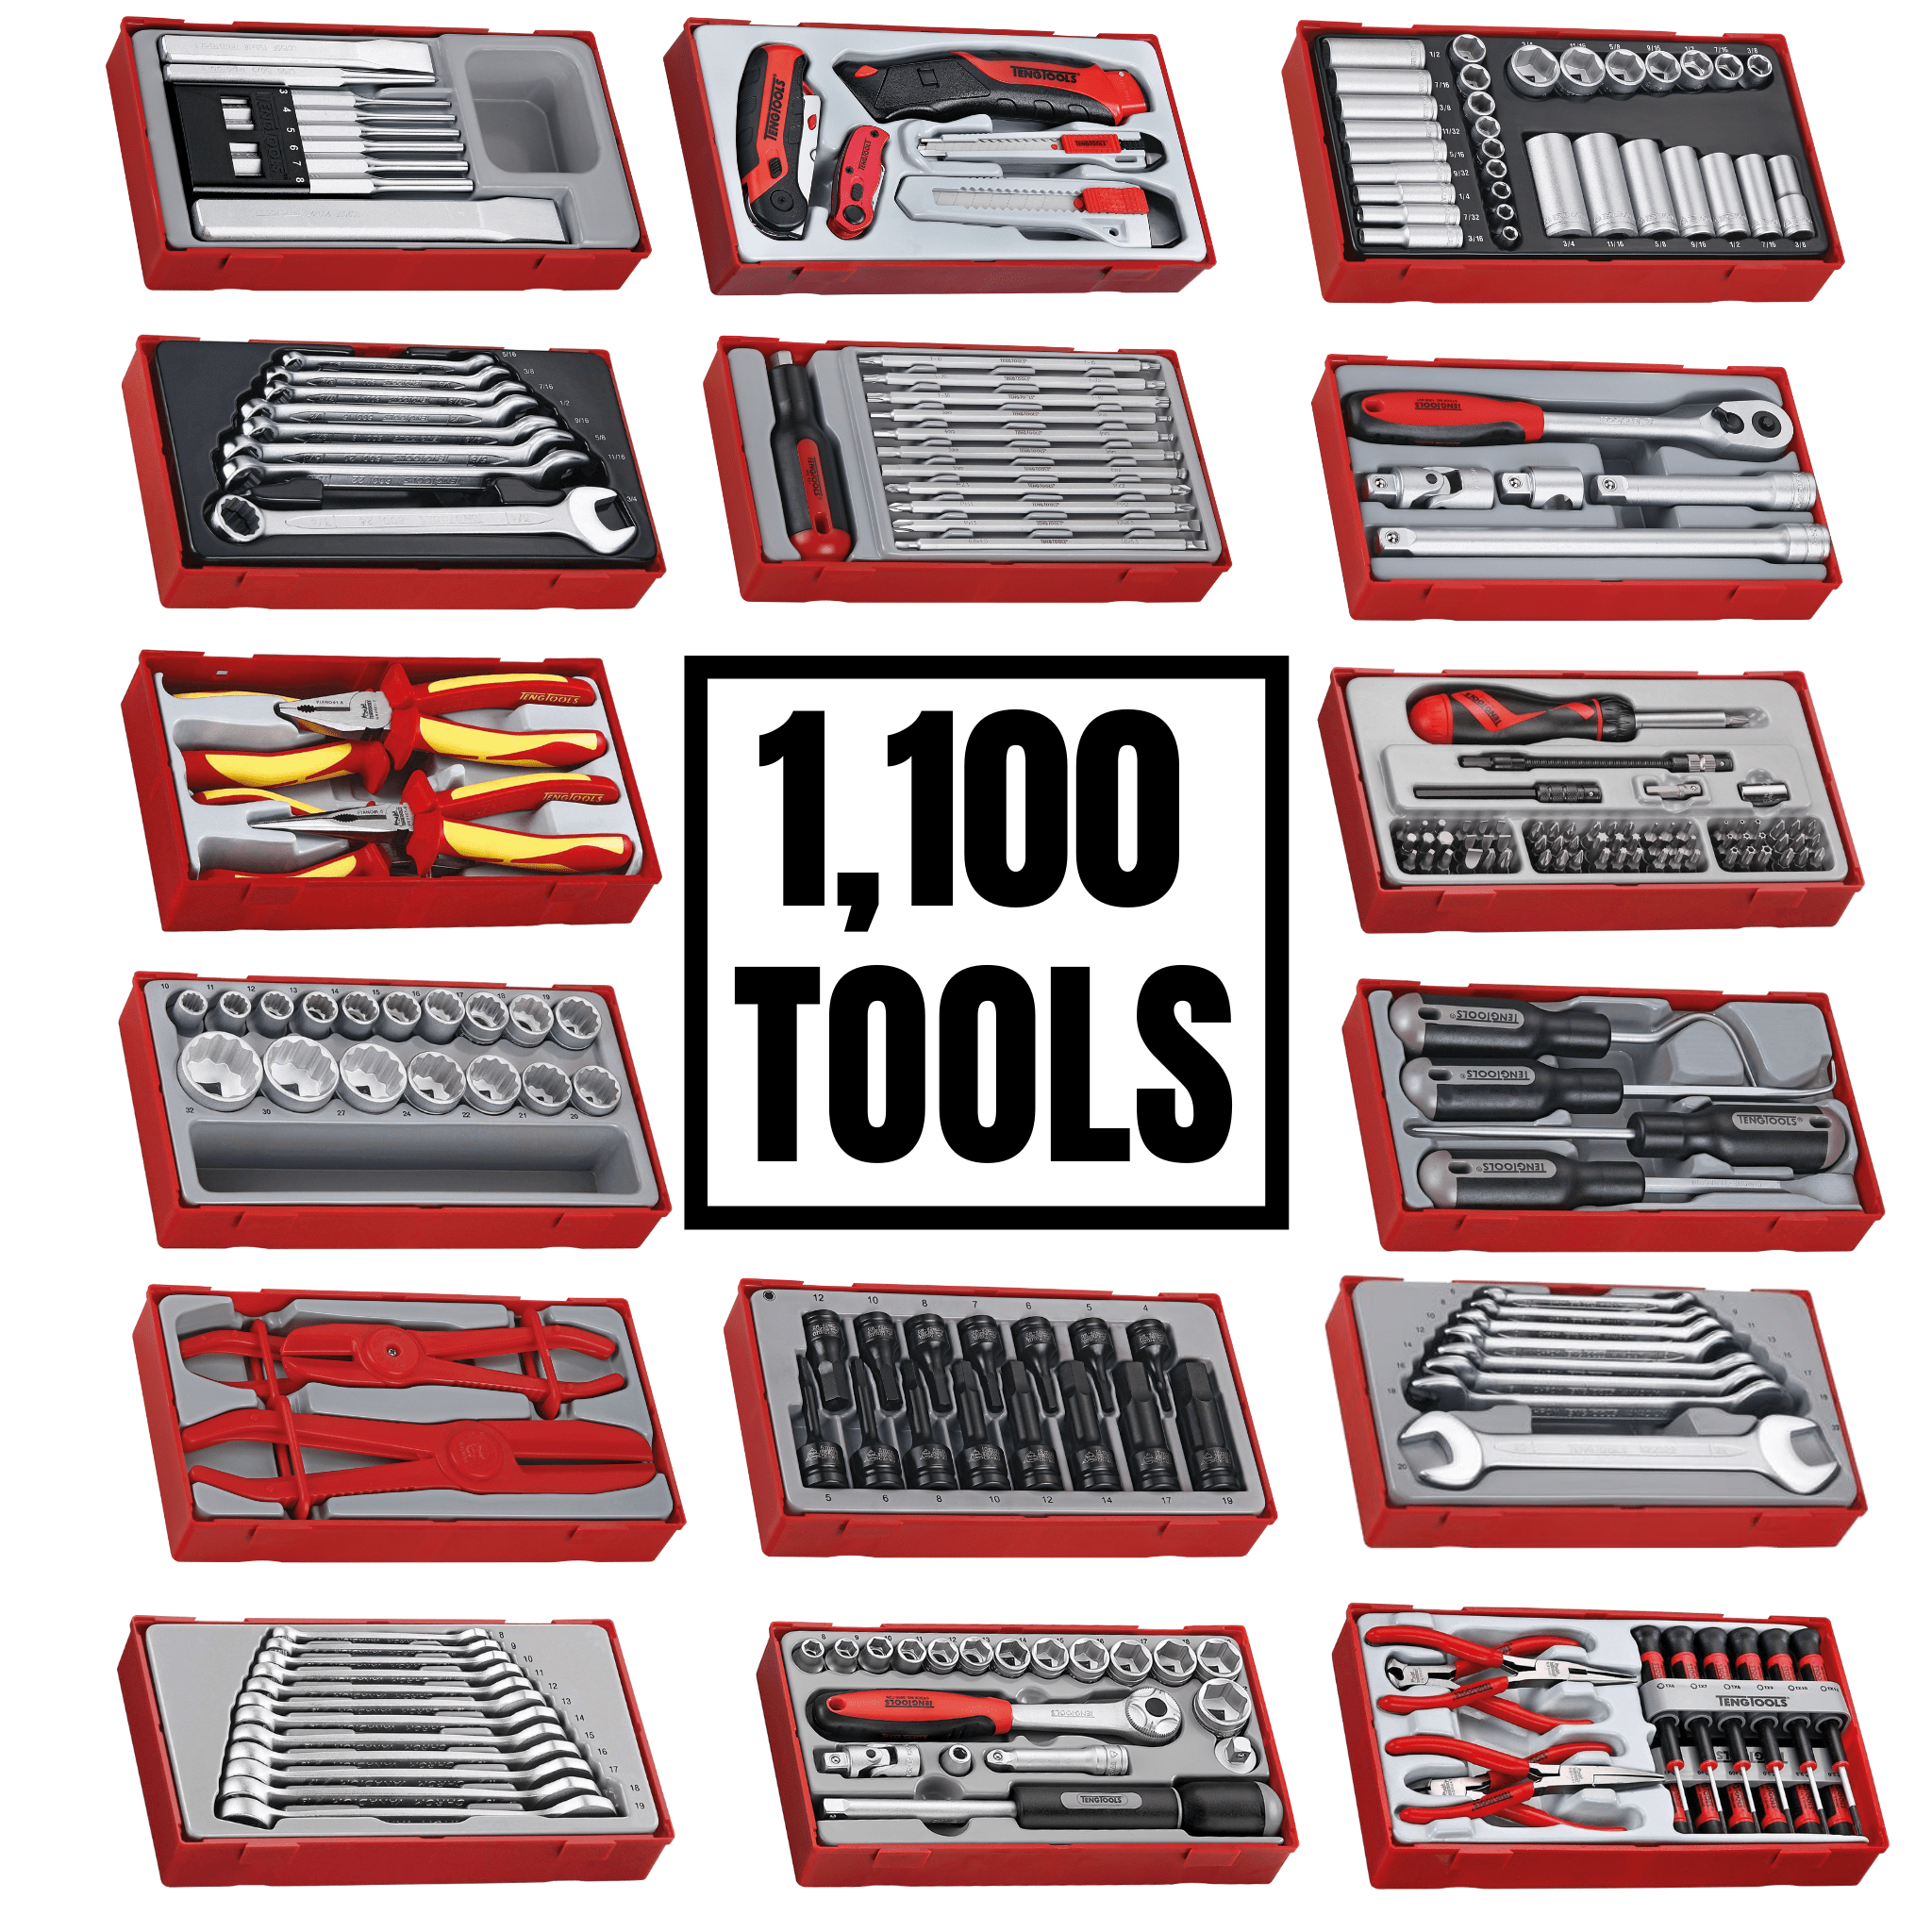 Teng Tools 1100 Monster Piece Mixed Hand Tool Bundle (No Storage) - TCMONSTERTOOLS